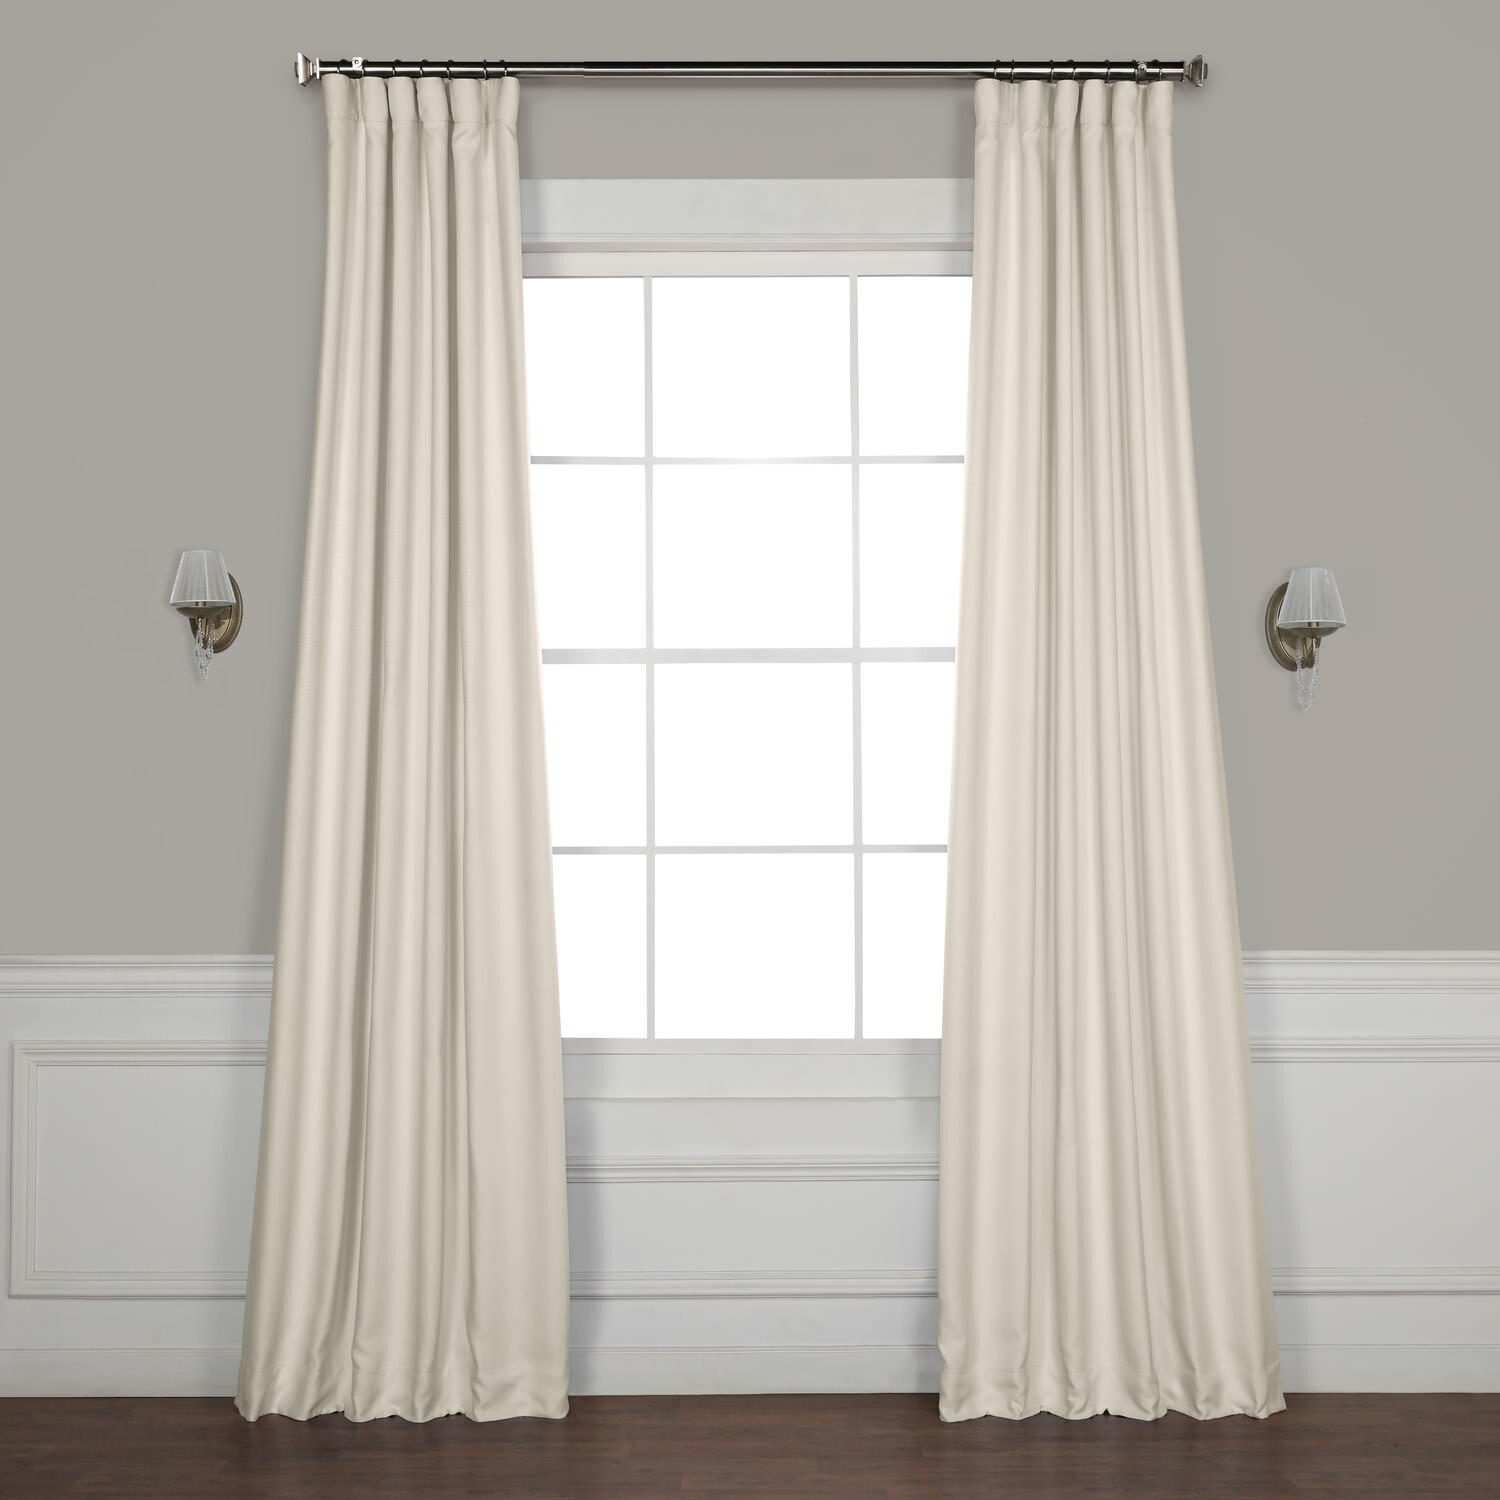 Clem Faux Linen Room Darkening Rod Pocket Single Curtain Panel Inside Ombre Faux Linen Semi Sheer Curtains (View 14 of 20)